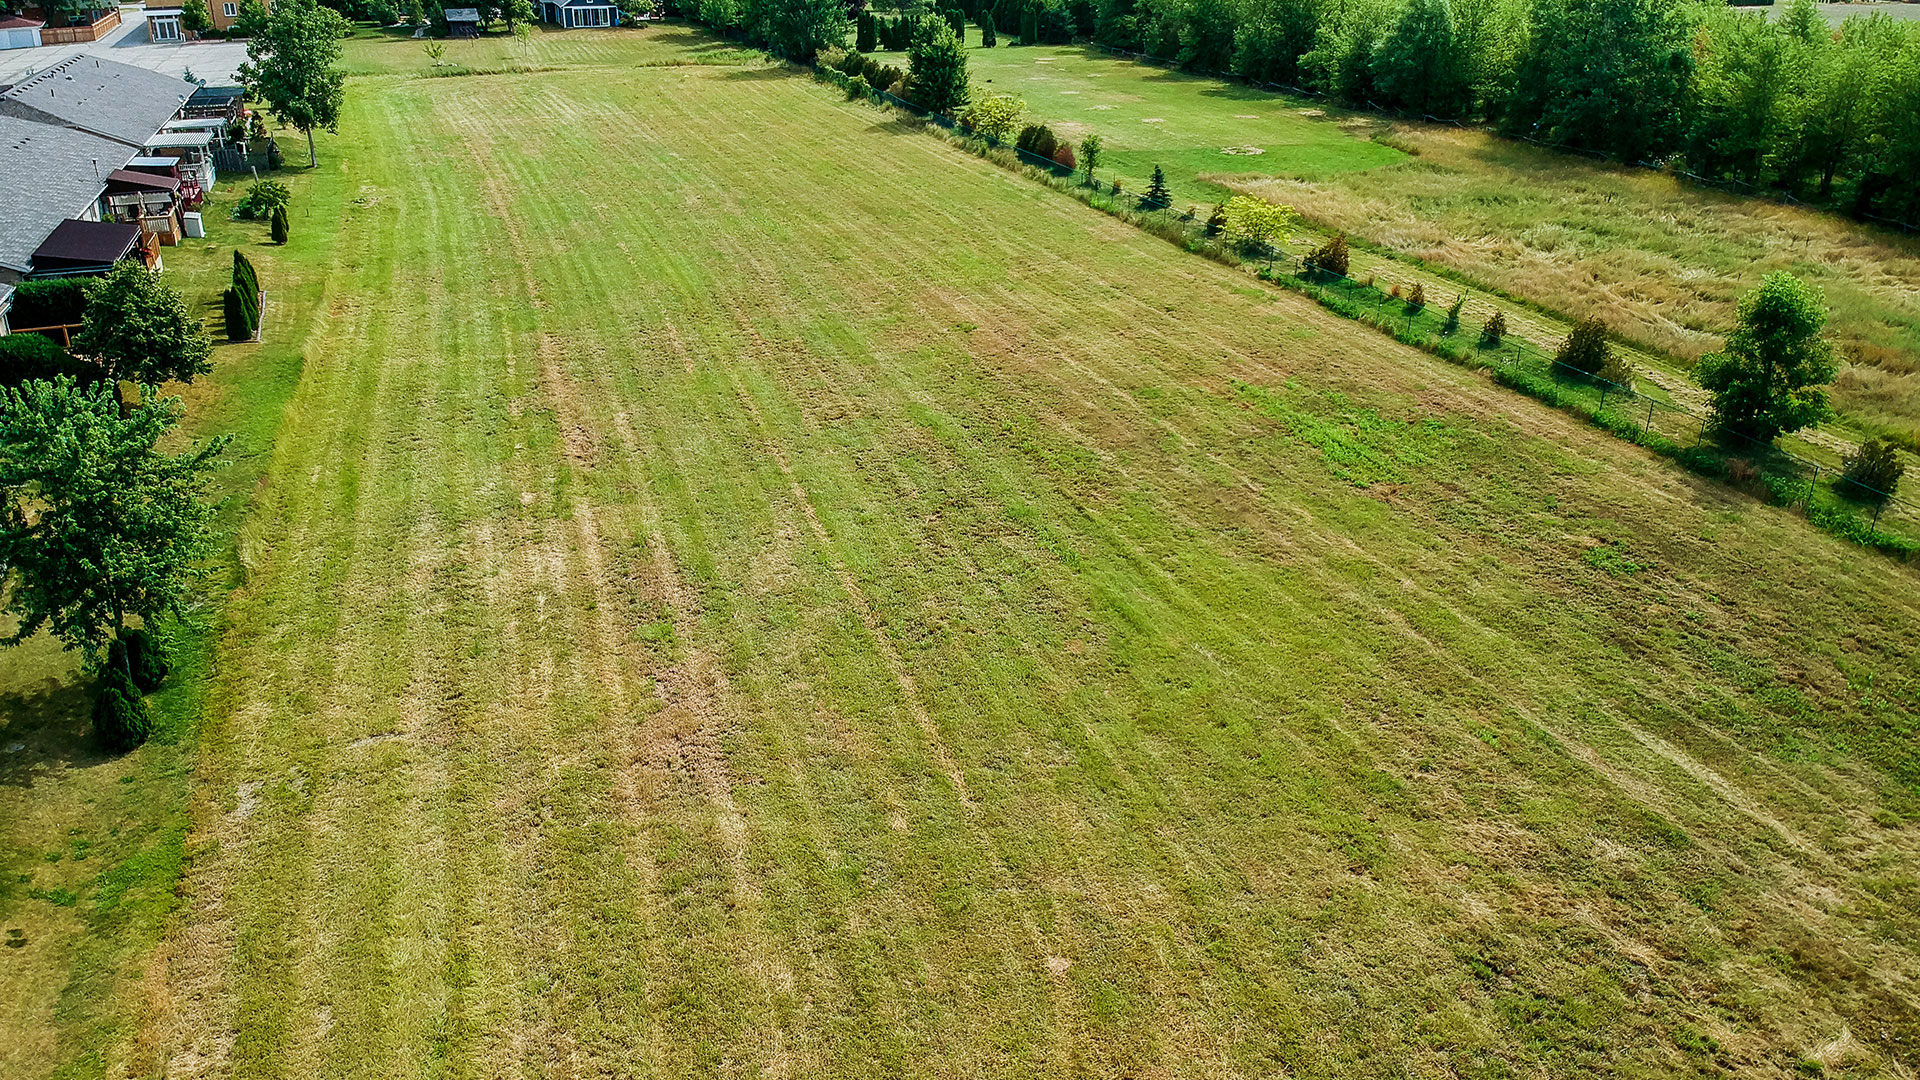 V/L County Rd 23, Essex - For Sale!